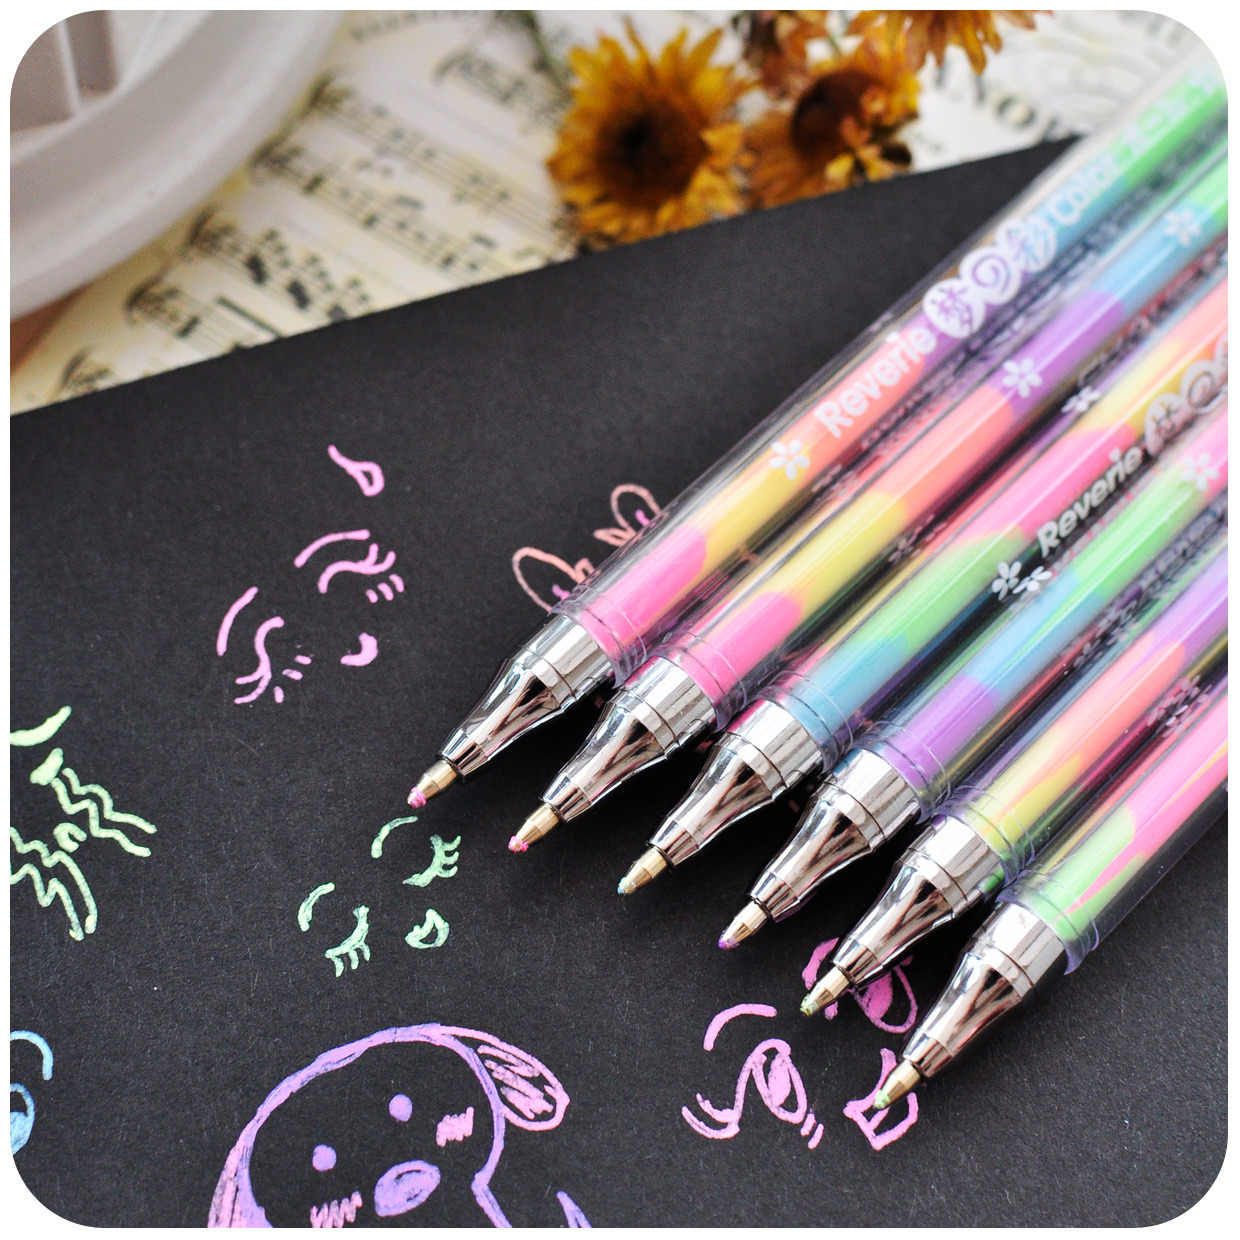 6 In 1 1pcs Yellow Gouache Pen Drawing Toys Book Coloring Book Doodle Pen Painting Drawing Board Kids Toys Birthday Gift